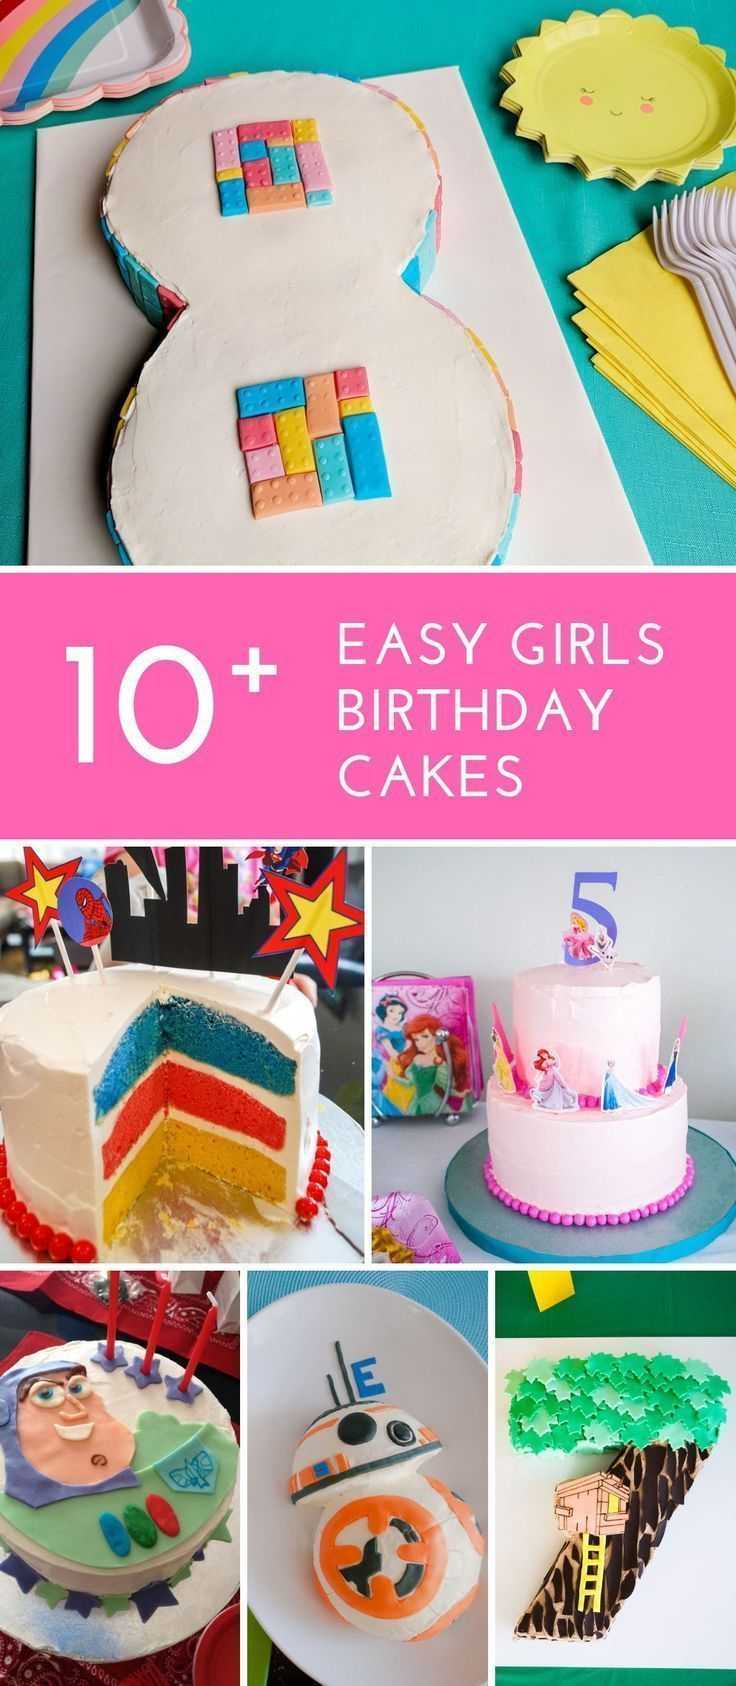 Easy Girls Birthday Cakes See These Simple DIY Girl Cake Ideas For Beginner Decorators Includes Age LEGO Friends Super Heroes